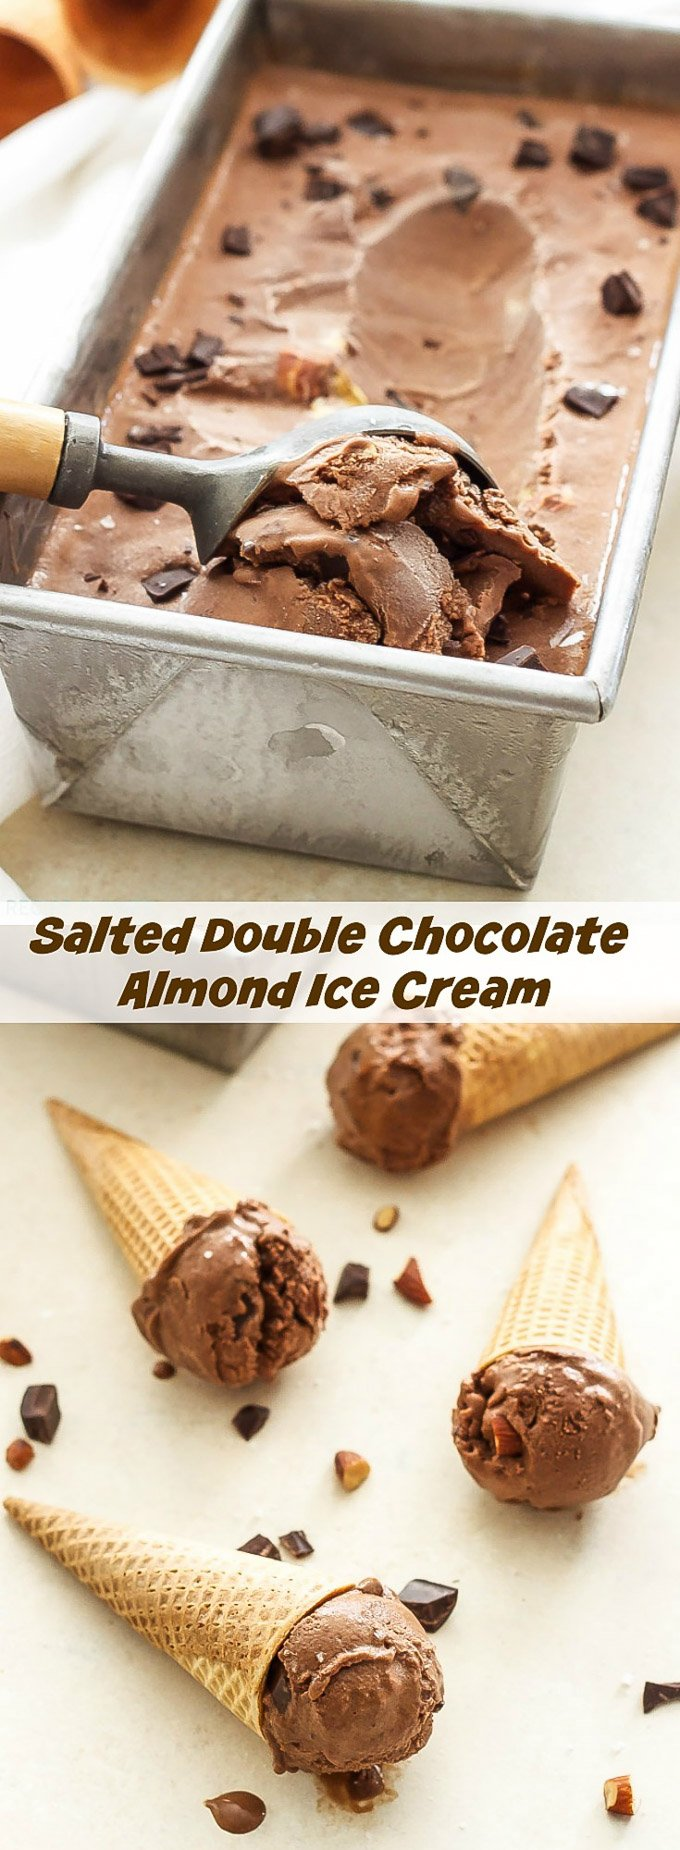 Salted Double Chocolate Almond Ice Cream | Loaded with almonds, chocolate chunks and a touch of sea salt, this dairy-free (vegan optional) ice cream is a salty/sweet chocolate lover's dream come true!